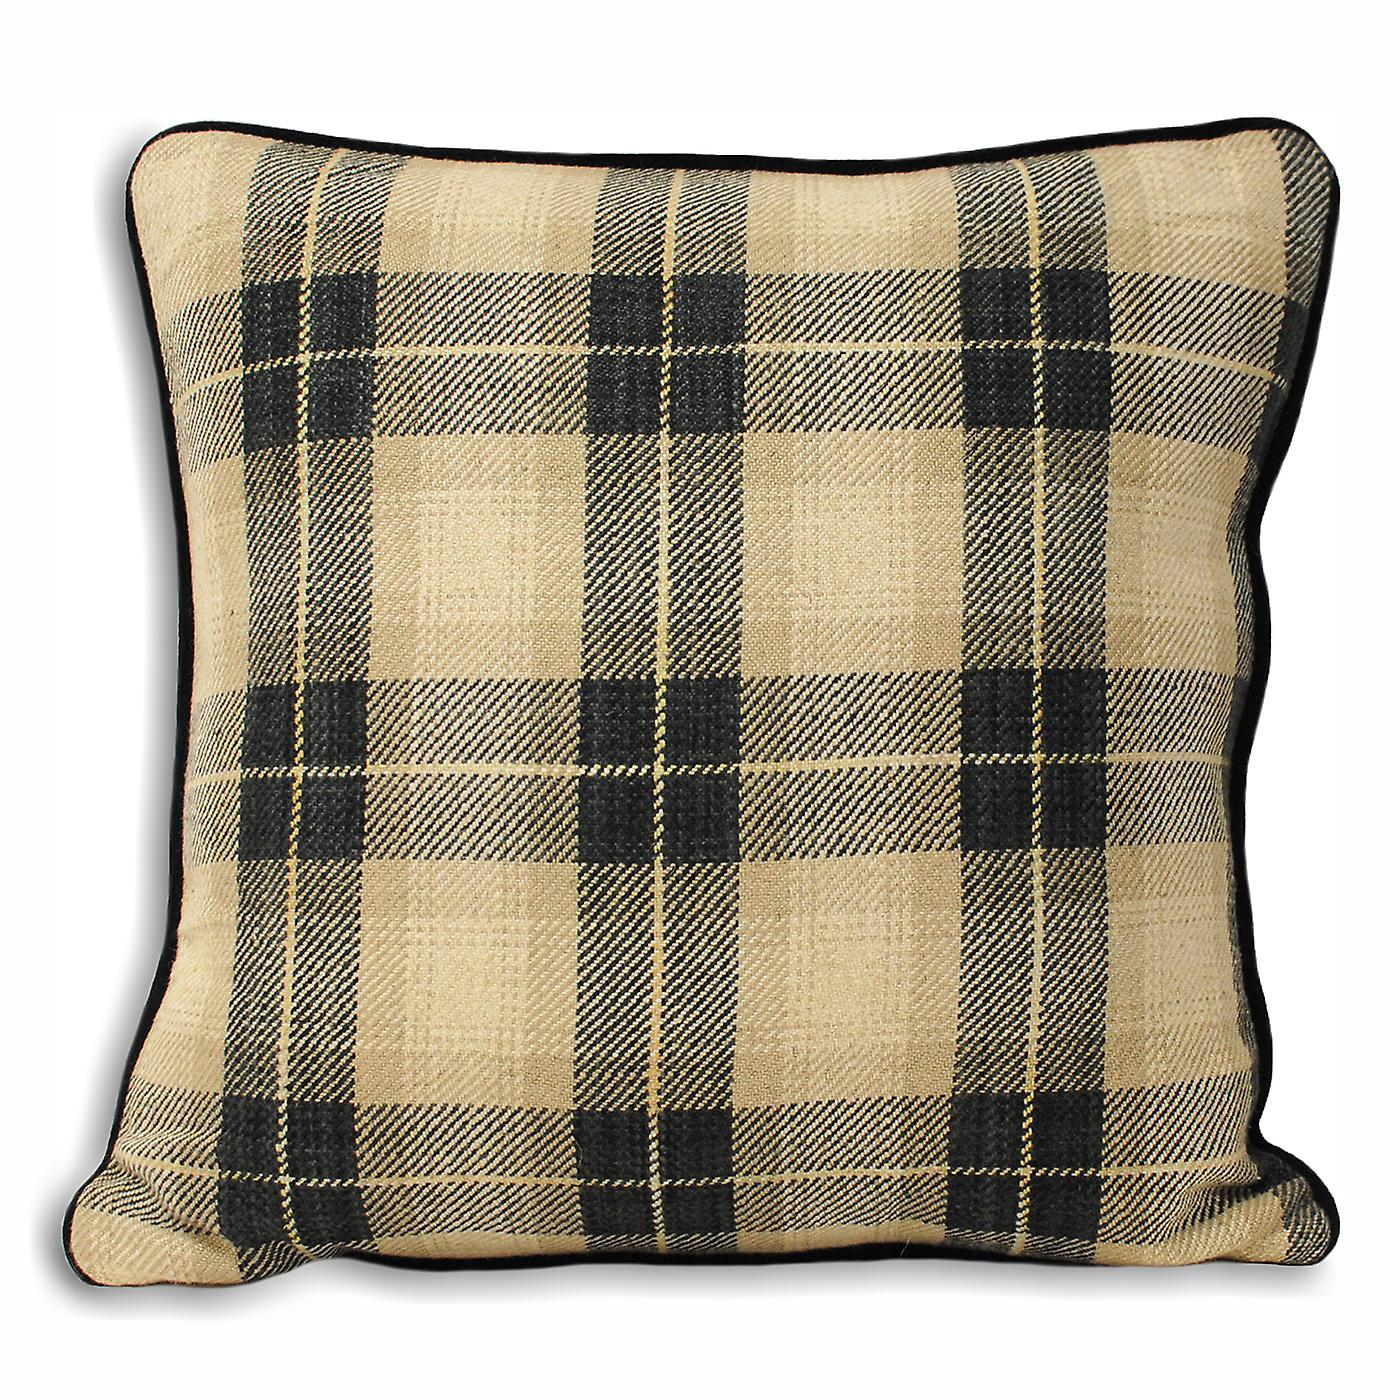 Housse Cocher Maison Coussin Riva De Harewood HEIYDW29